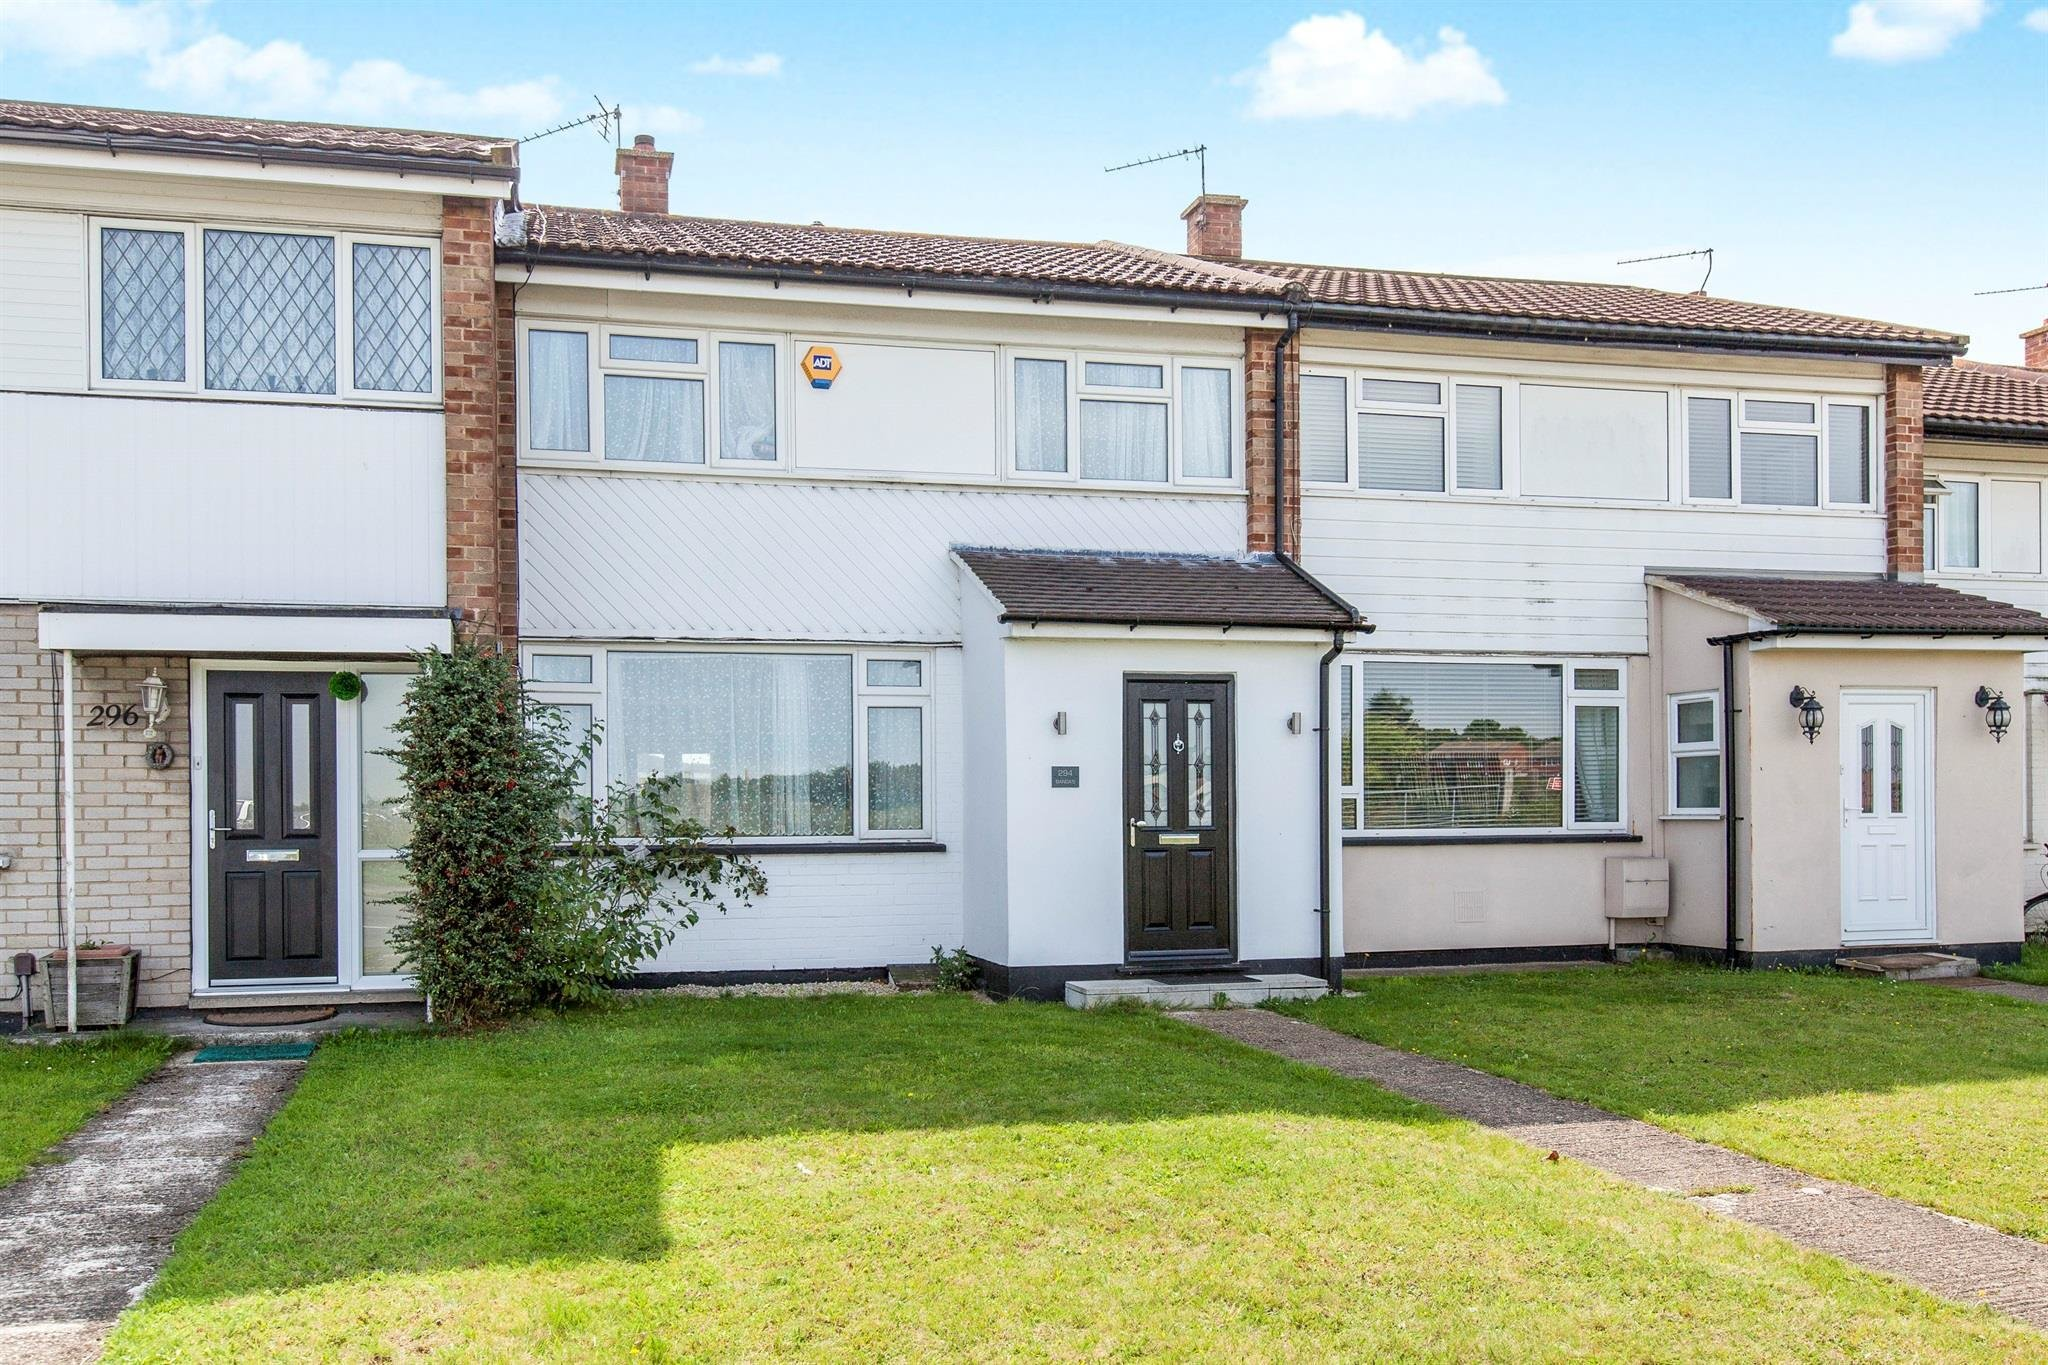 Best 3 Bedroom Terraced House For Sale Parlaunt Road Slough Sl3 8Ax – Thehouseshop Com With Pictures